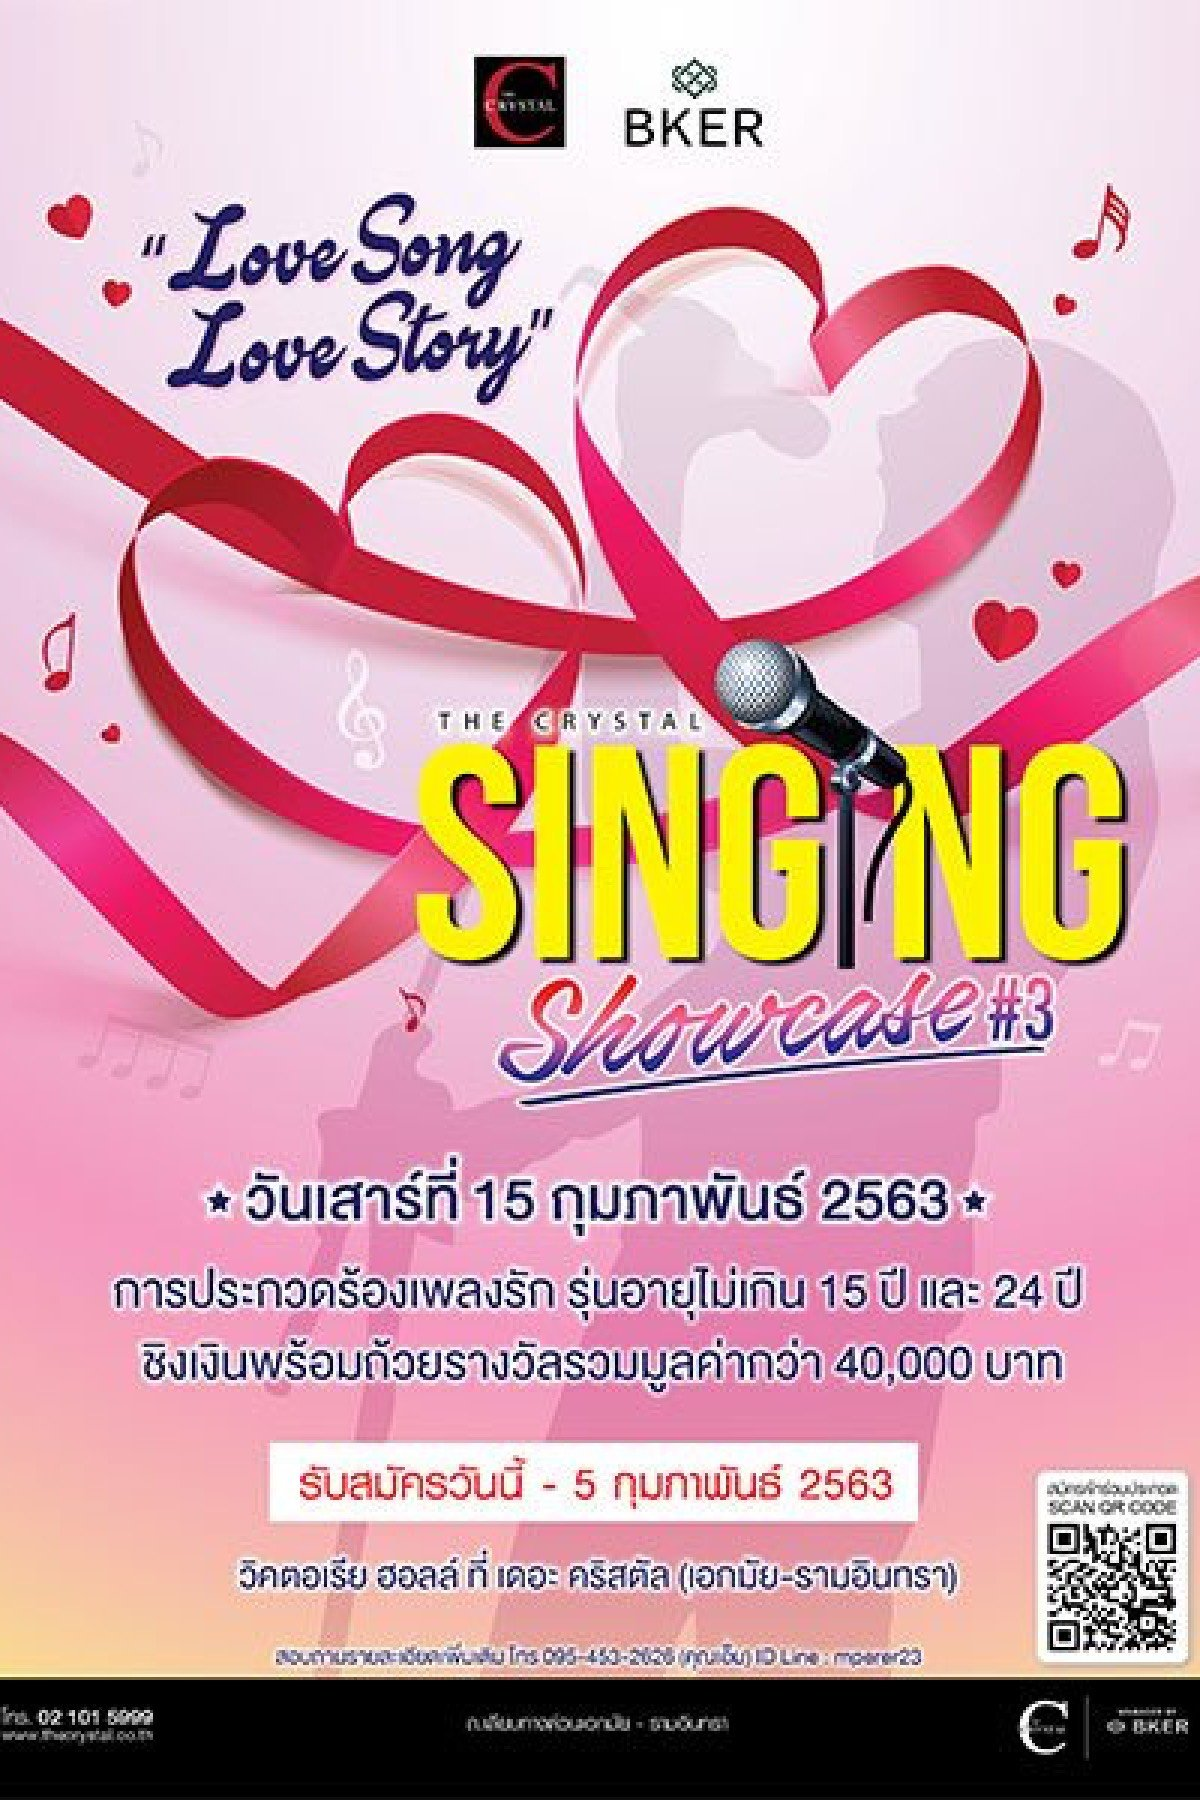 The Crystal Ekamai-Ramindra is pleased to announce THE CRYSTAL SINGING SHOWCASE #3 LoveSong LoveStory (for ages under 15 years and 24 years)